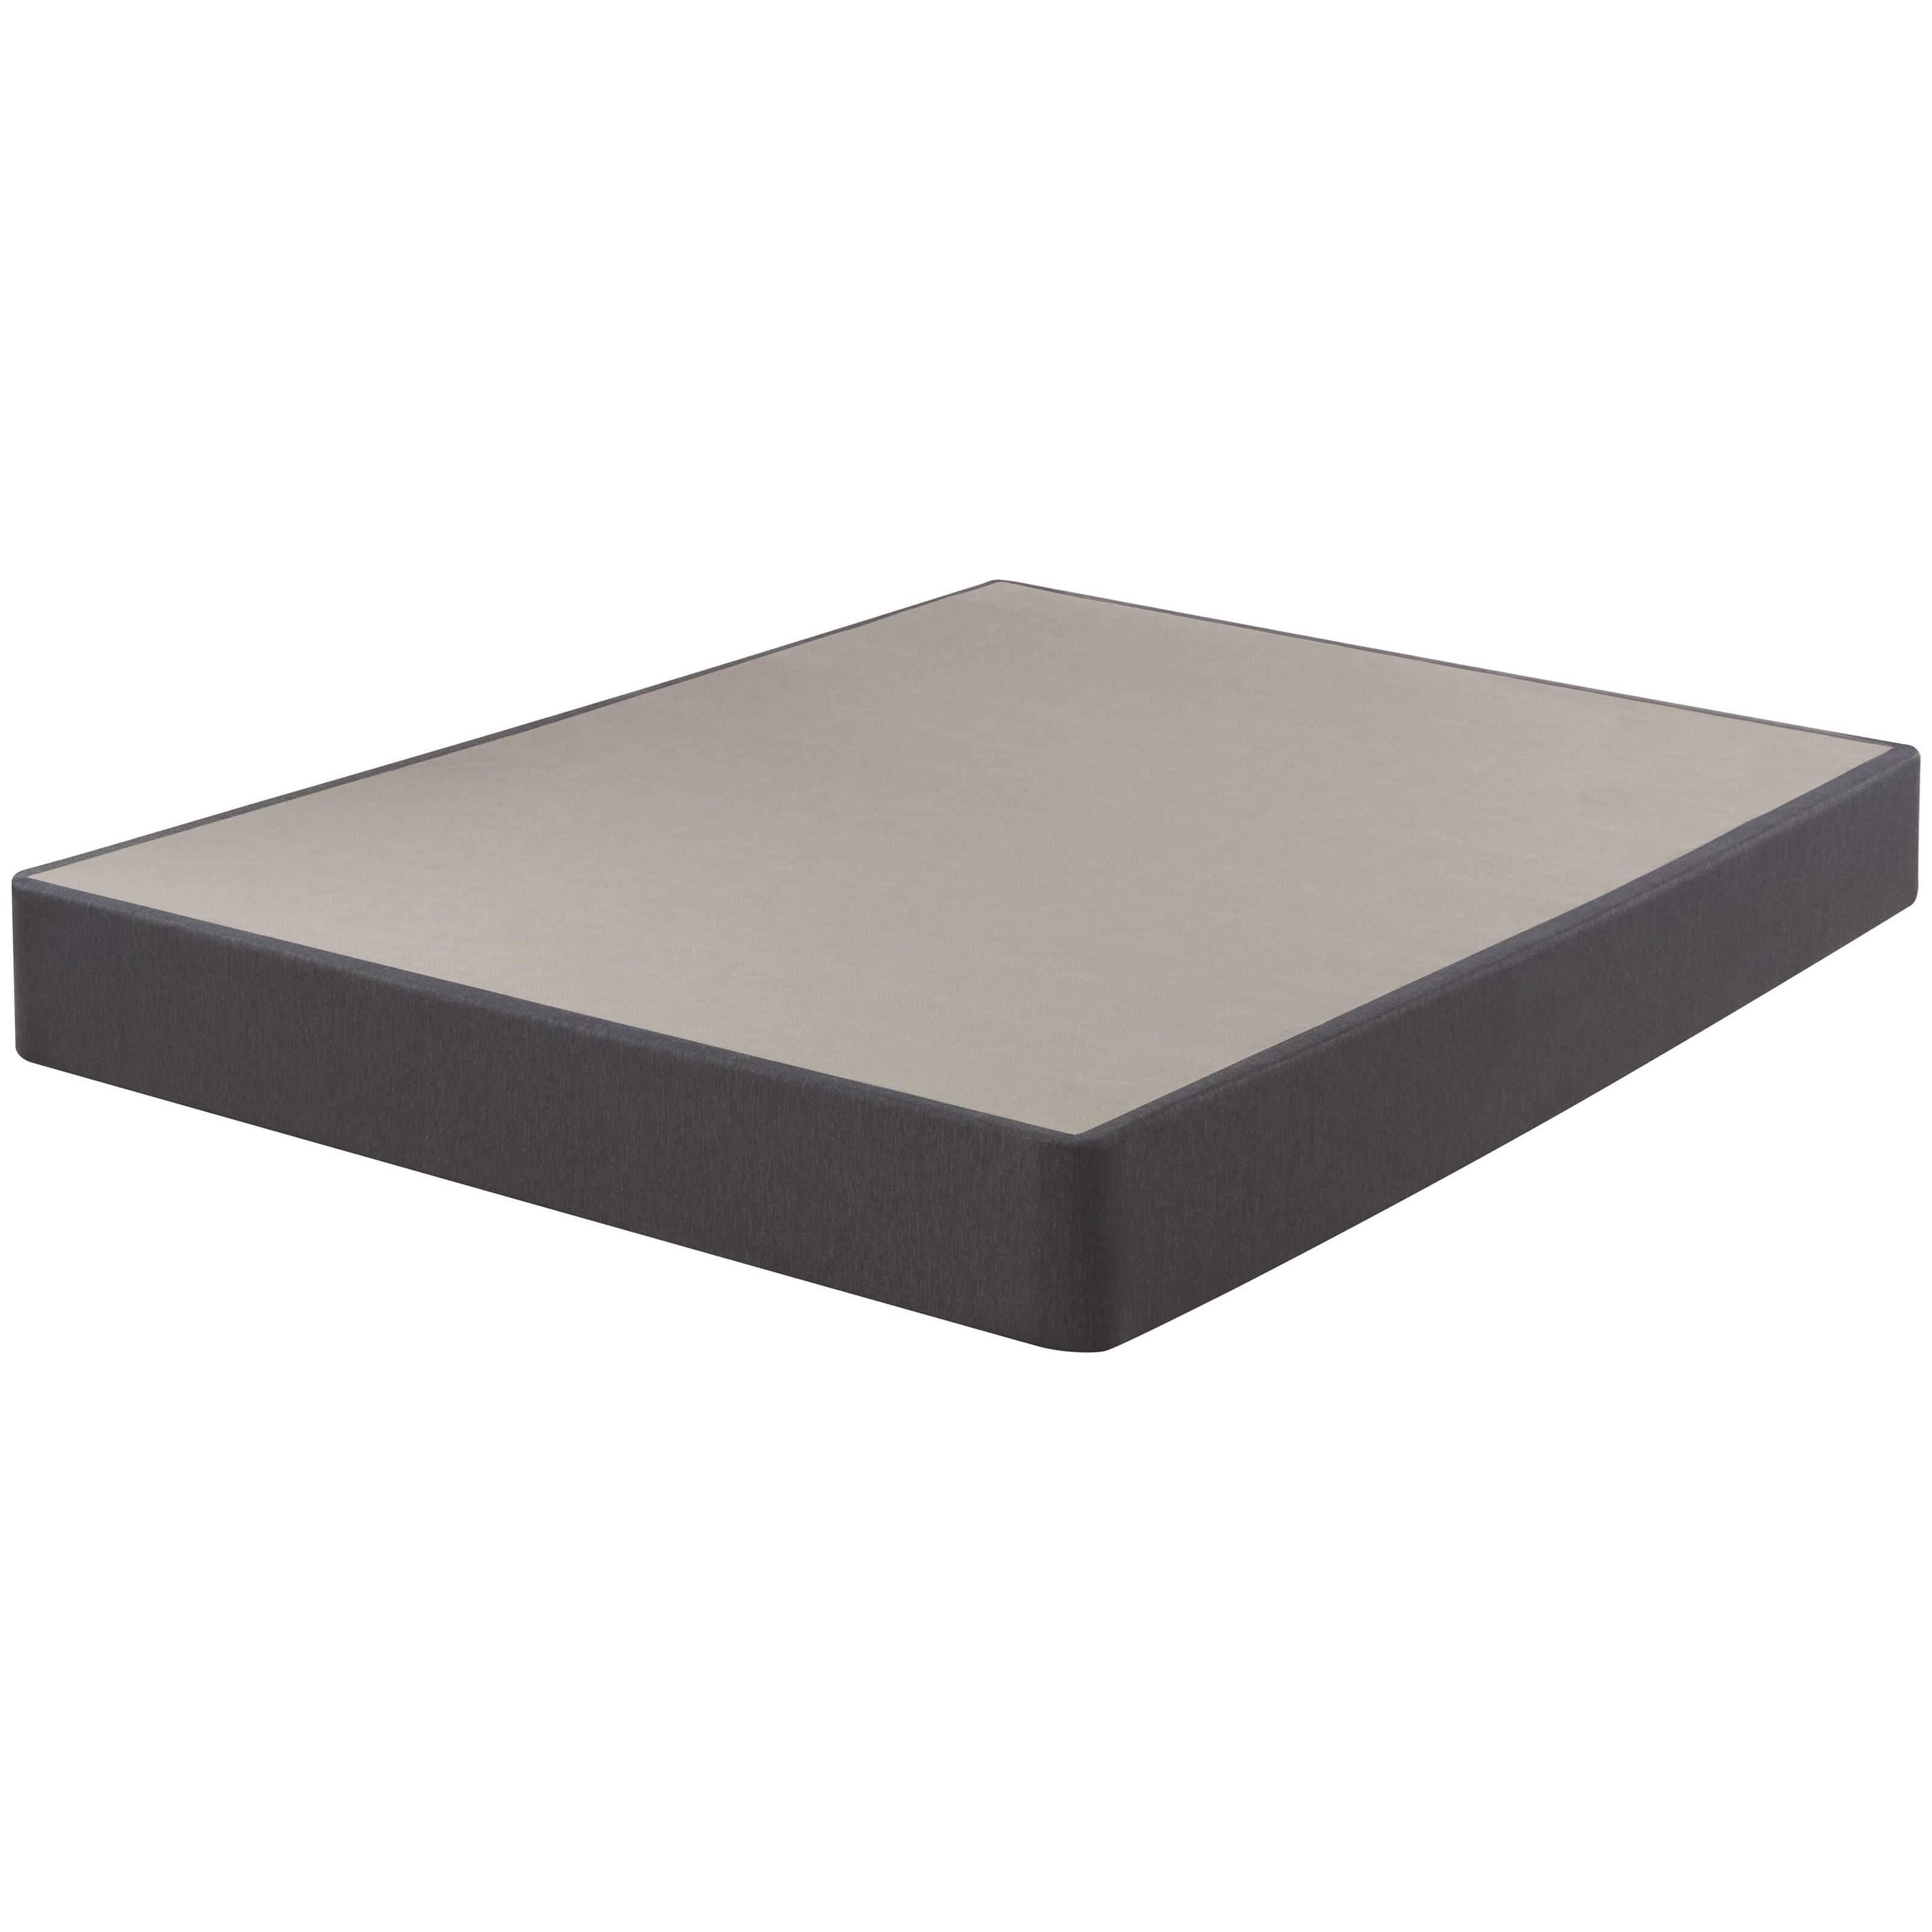 """2020 Perfect Sleeper Foundations Queen 9"""" High Profile Foundation by Serta at Esprit Decor Home Furnishings"""